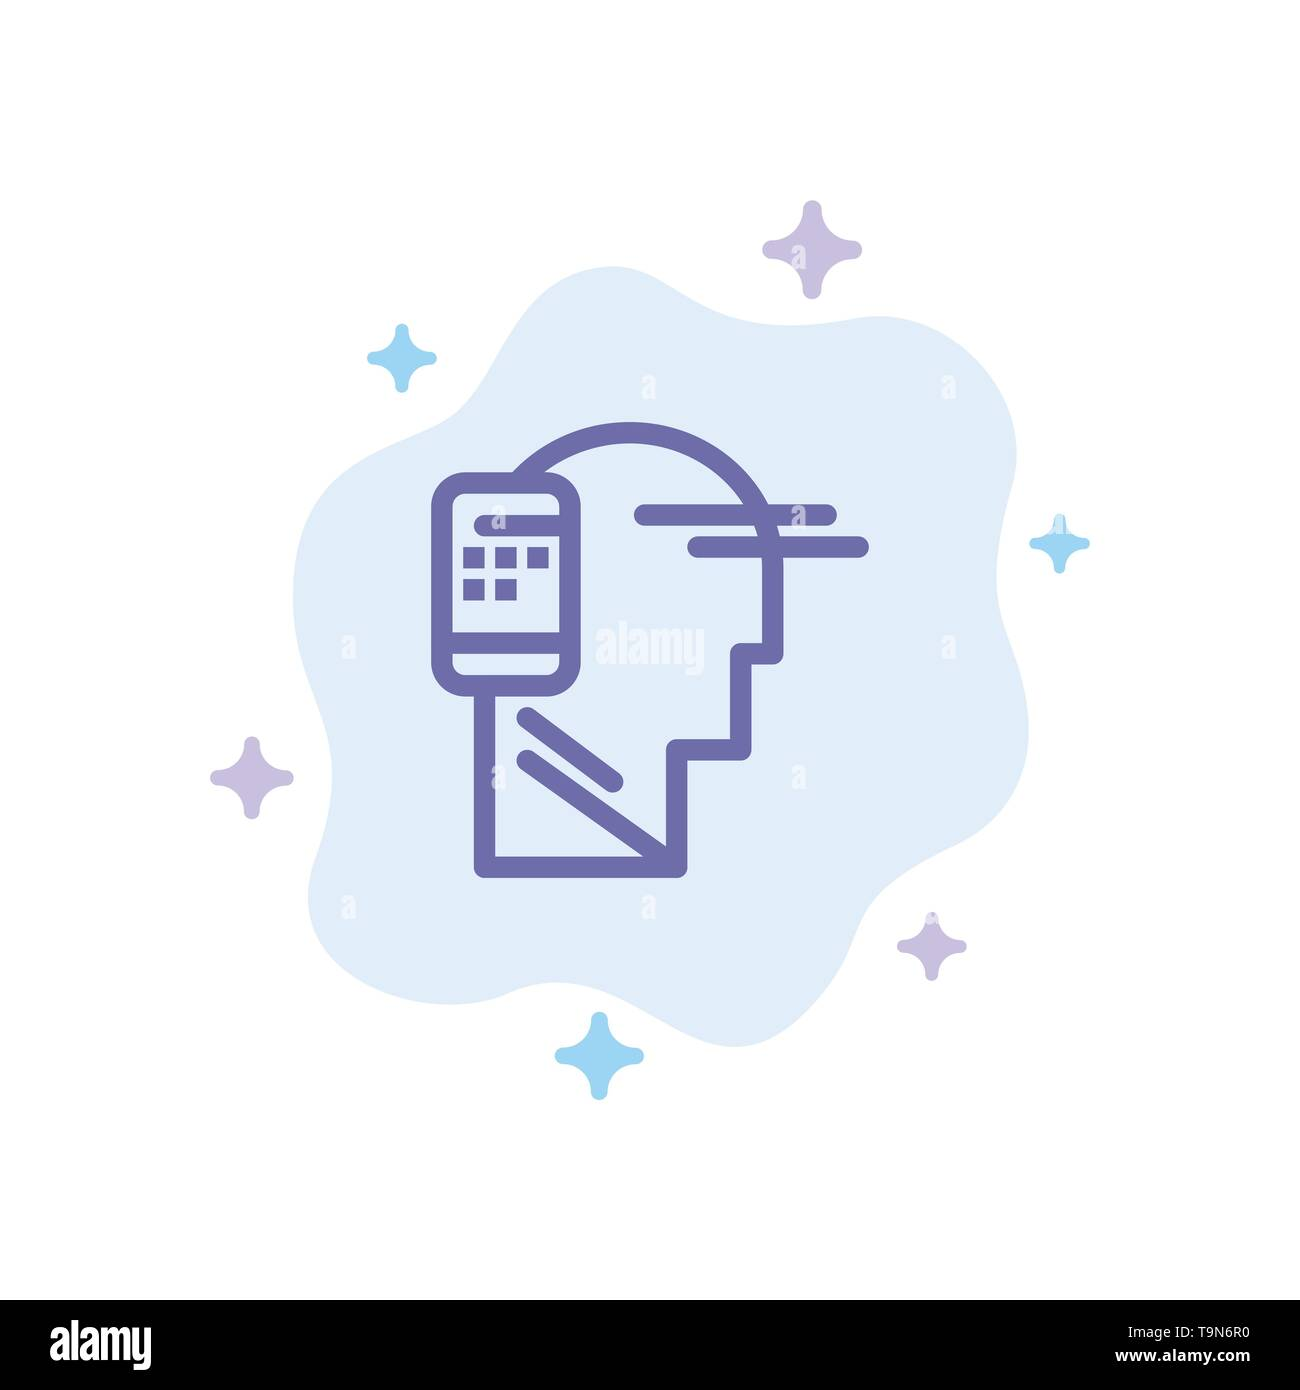 Communication, Connected, Human, Mobile, Mobility Blue Icon on Abstract Cloud Background - Stock Image